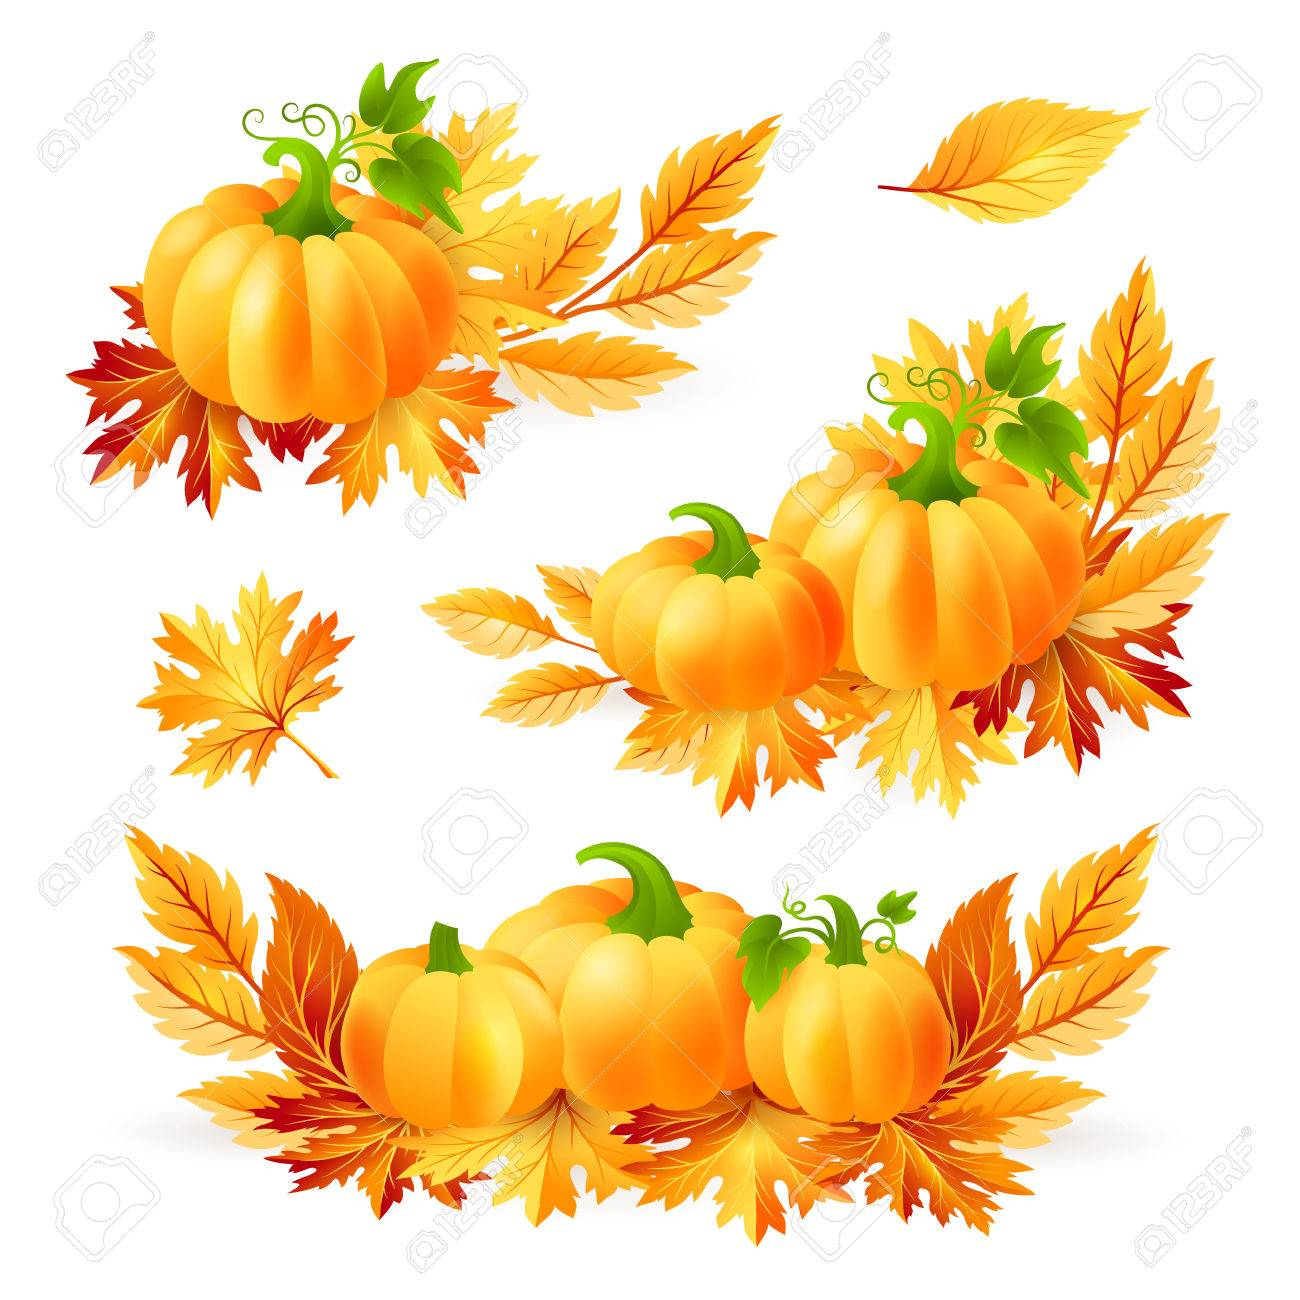 Thanksgiving design elements. Pumpkins with autumn leaves. Holiday vector decorations. - 62600980